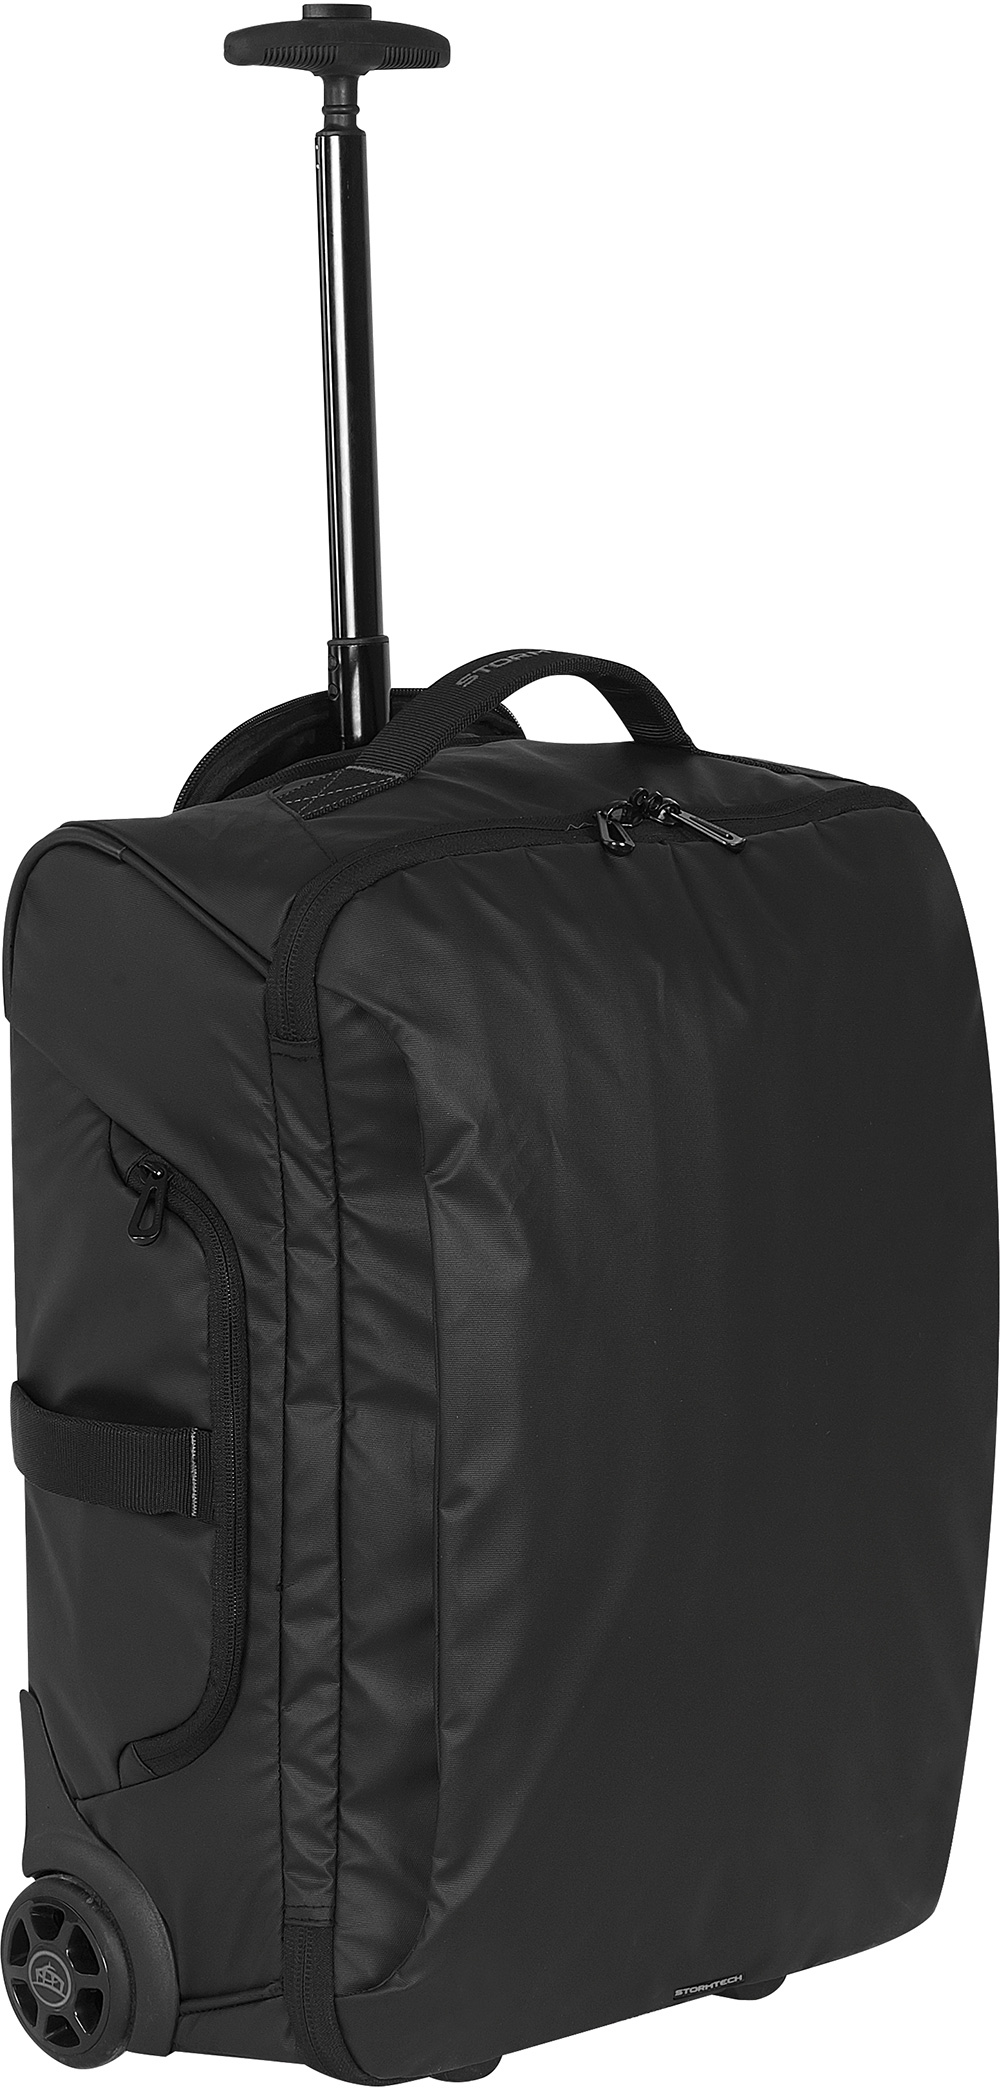 Stormtech Fc 1 Freestyle Carry On Luggage